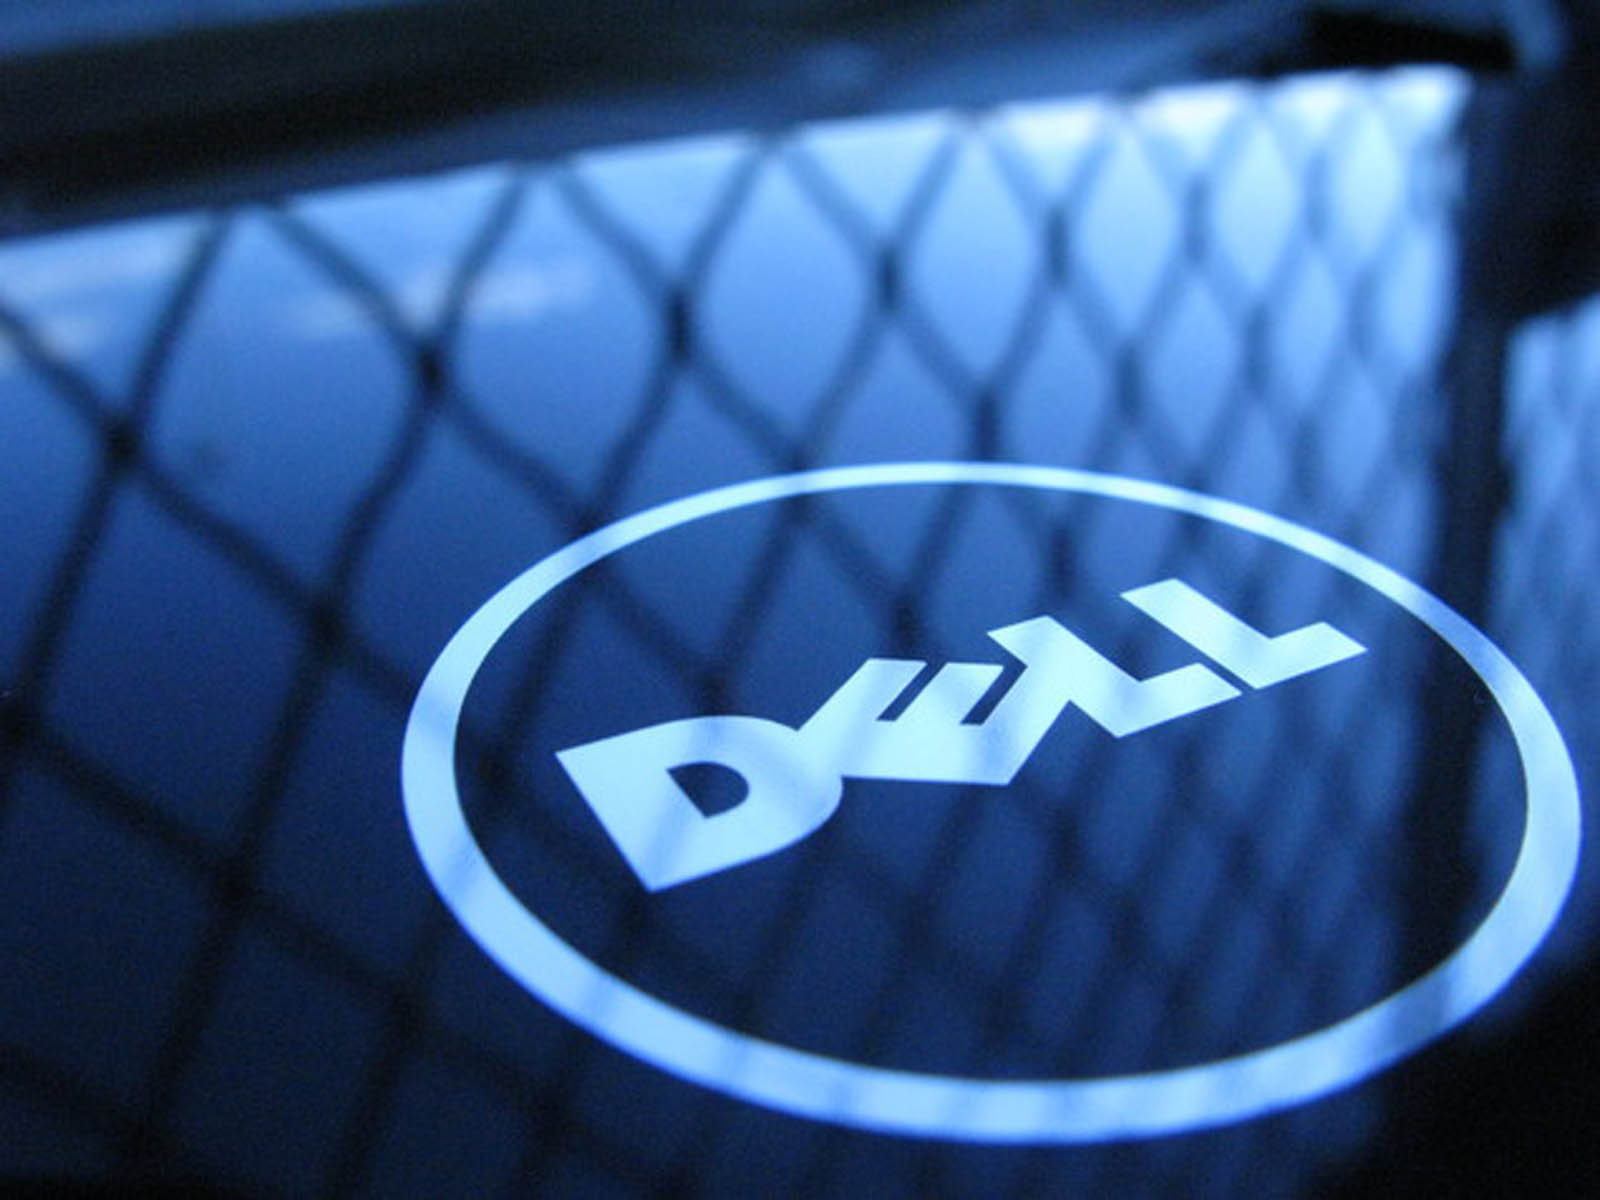 dell computers wallpaper logo - photo #11